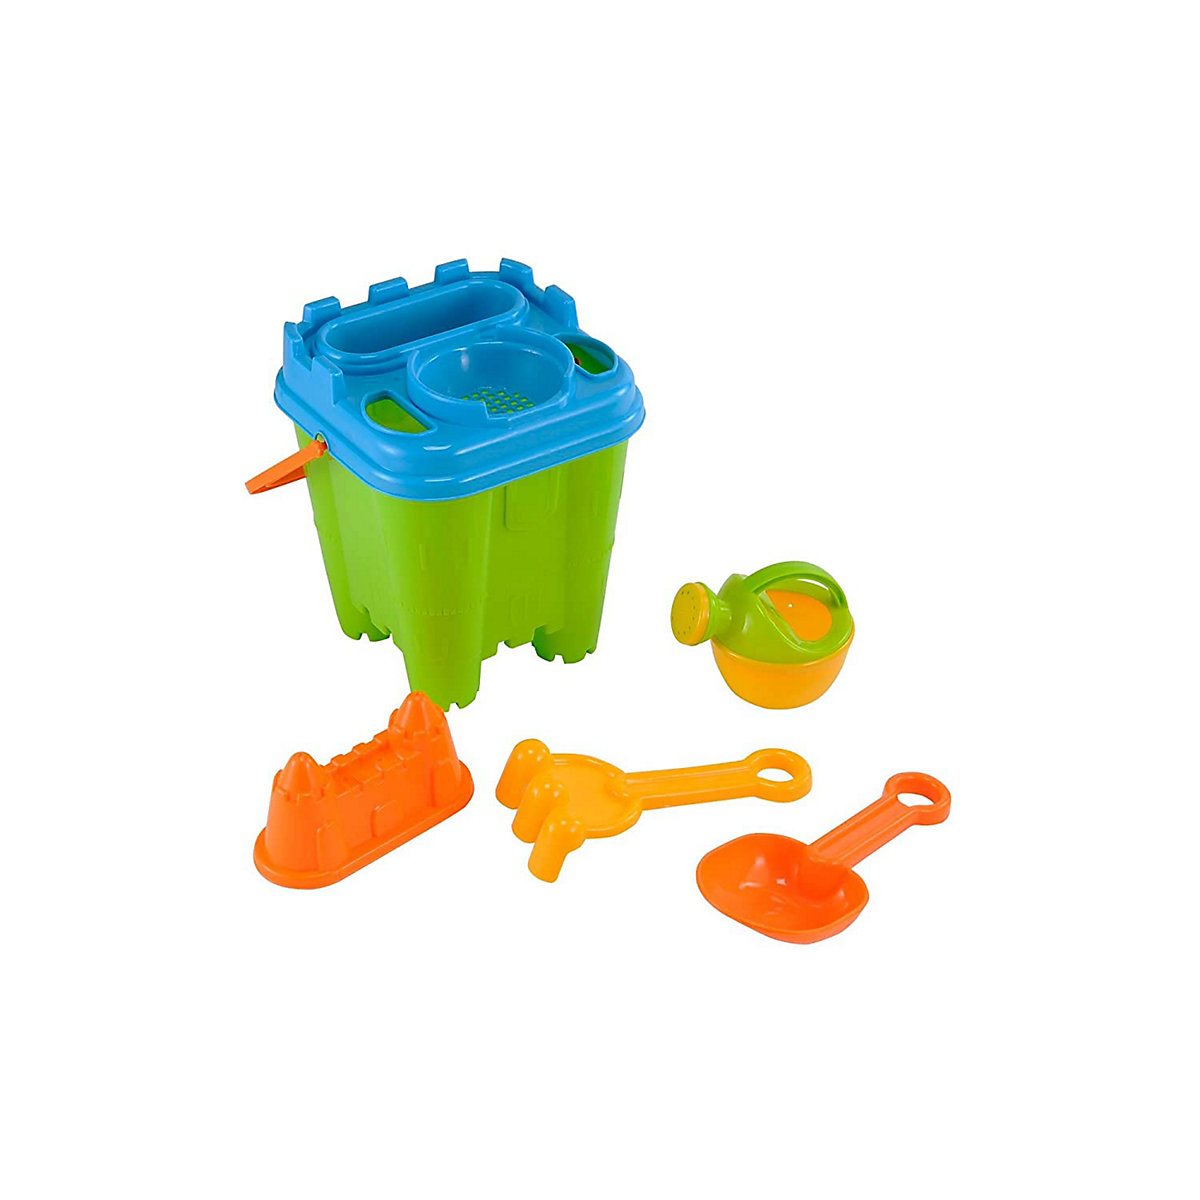 New ELC Boys and Girls Bucket Set Toy From 18 months - Early Learning Centre Gifts